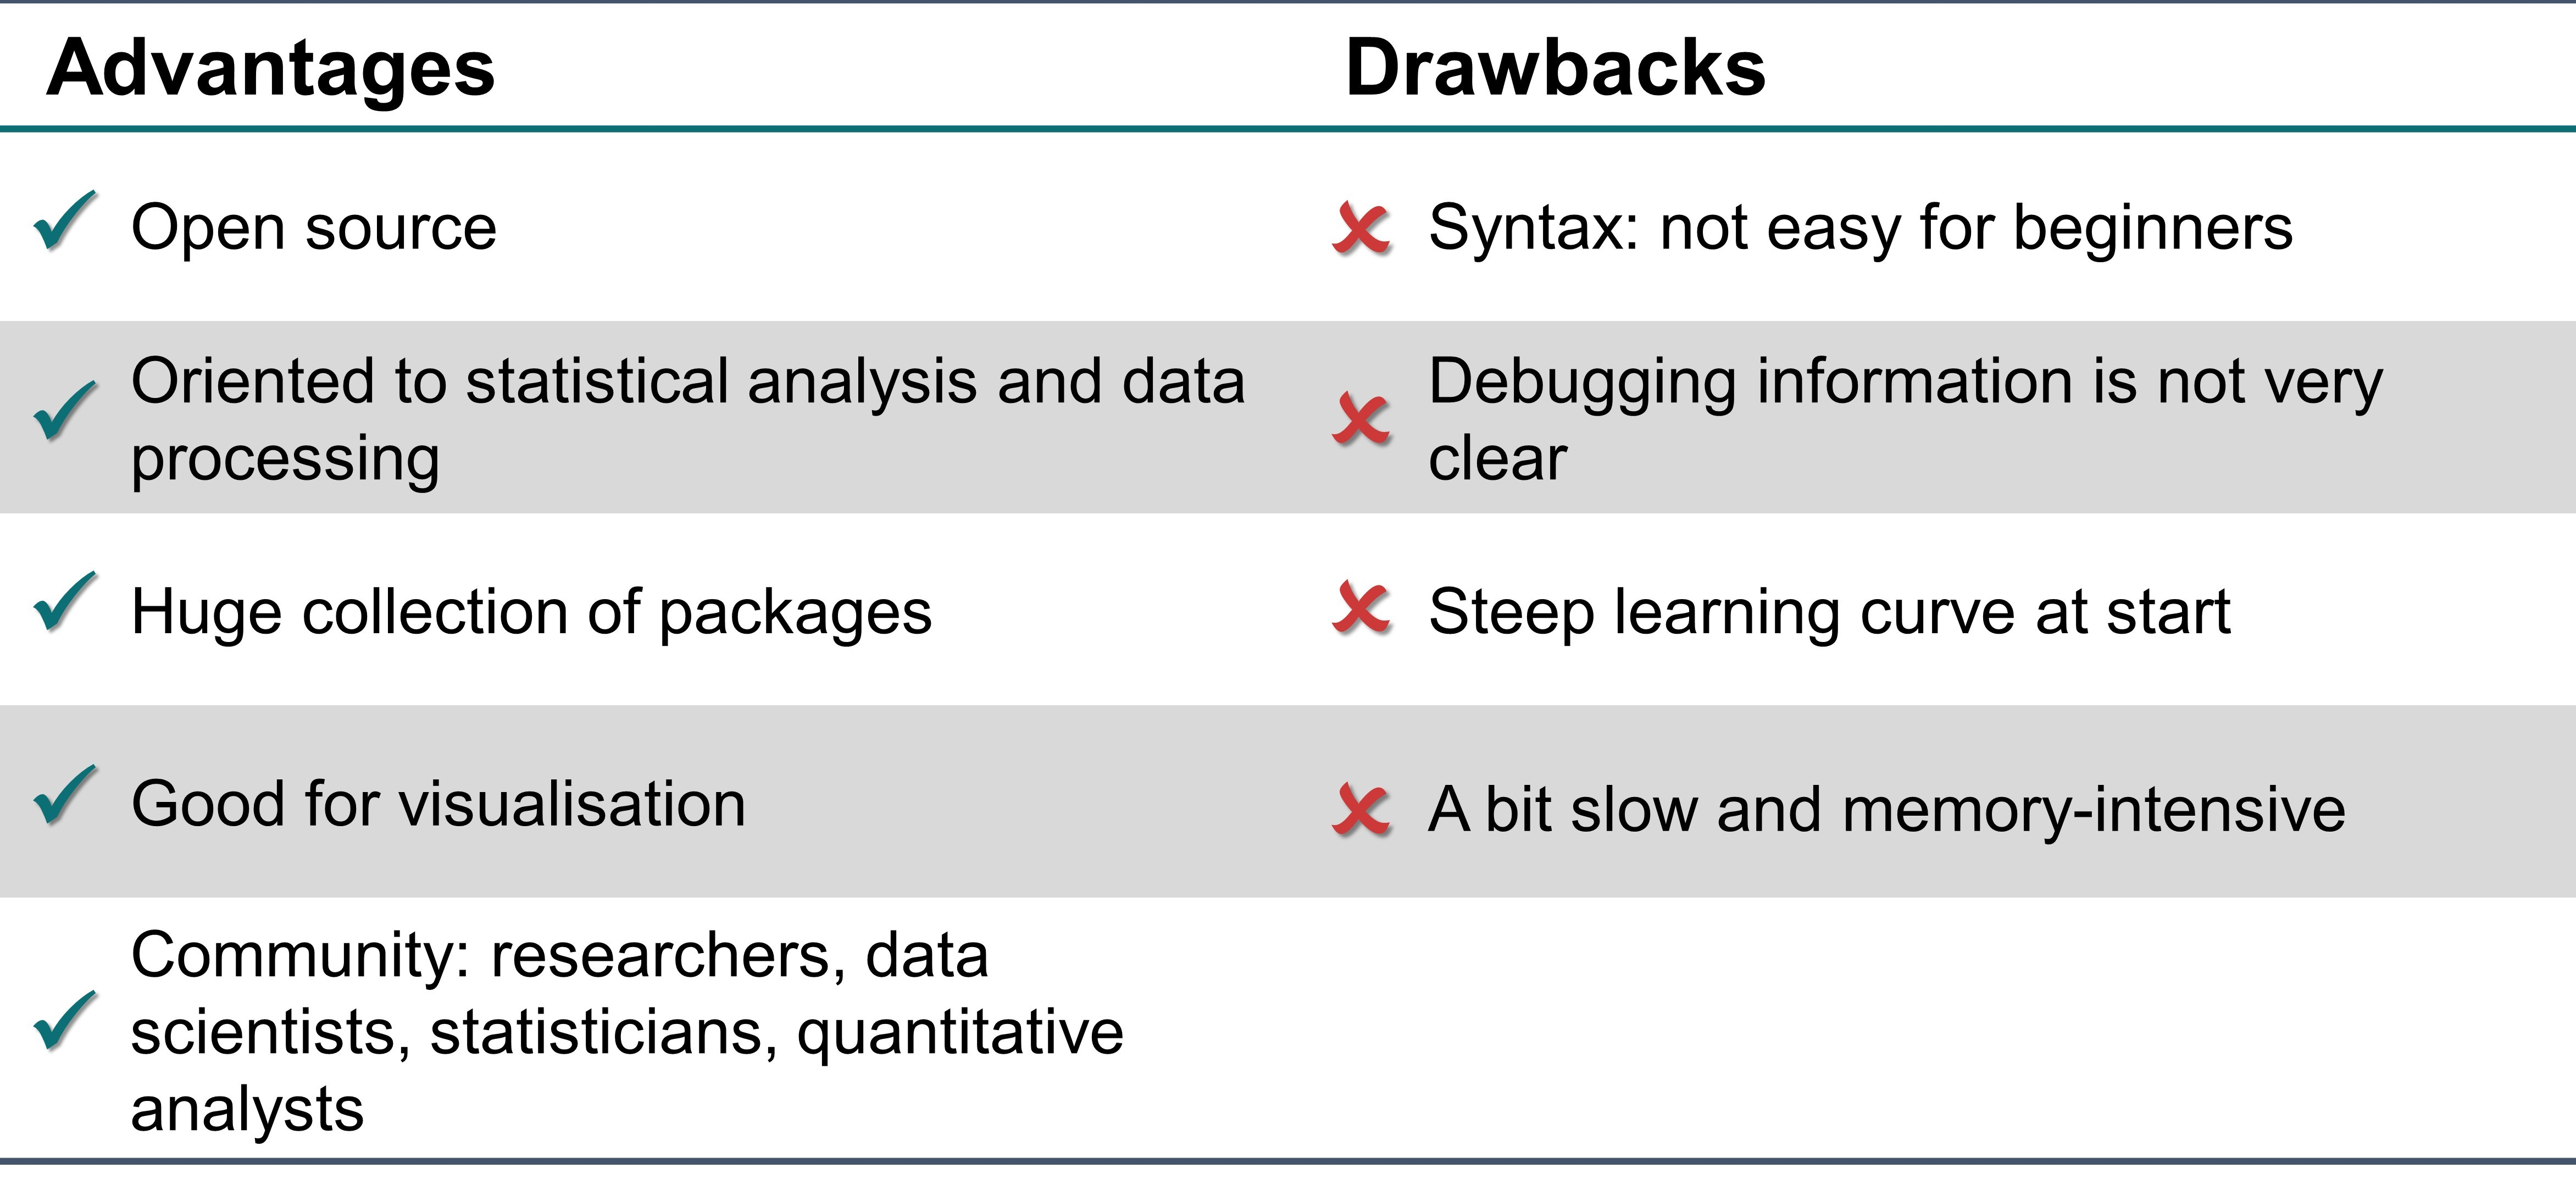 Table 6.4.1. The advantages and drawbacks of R